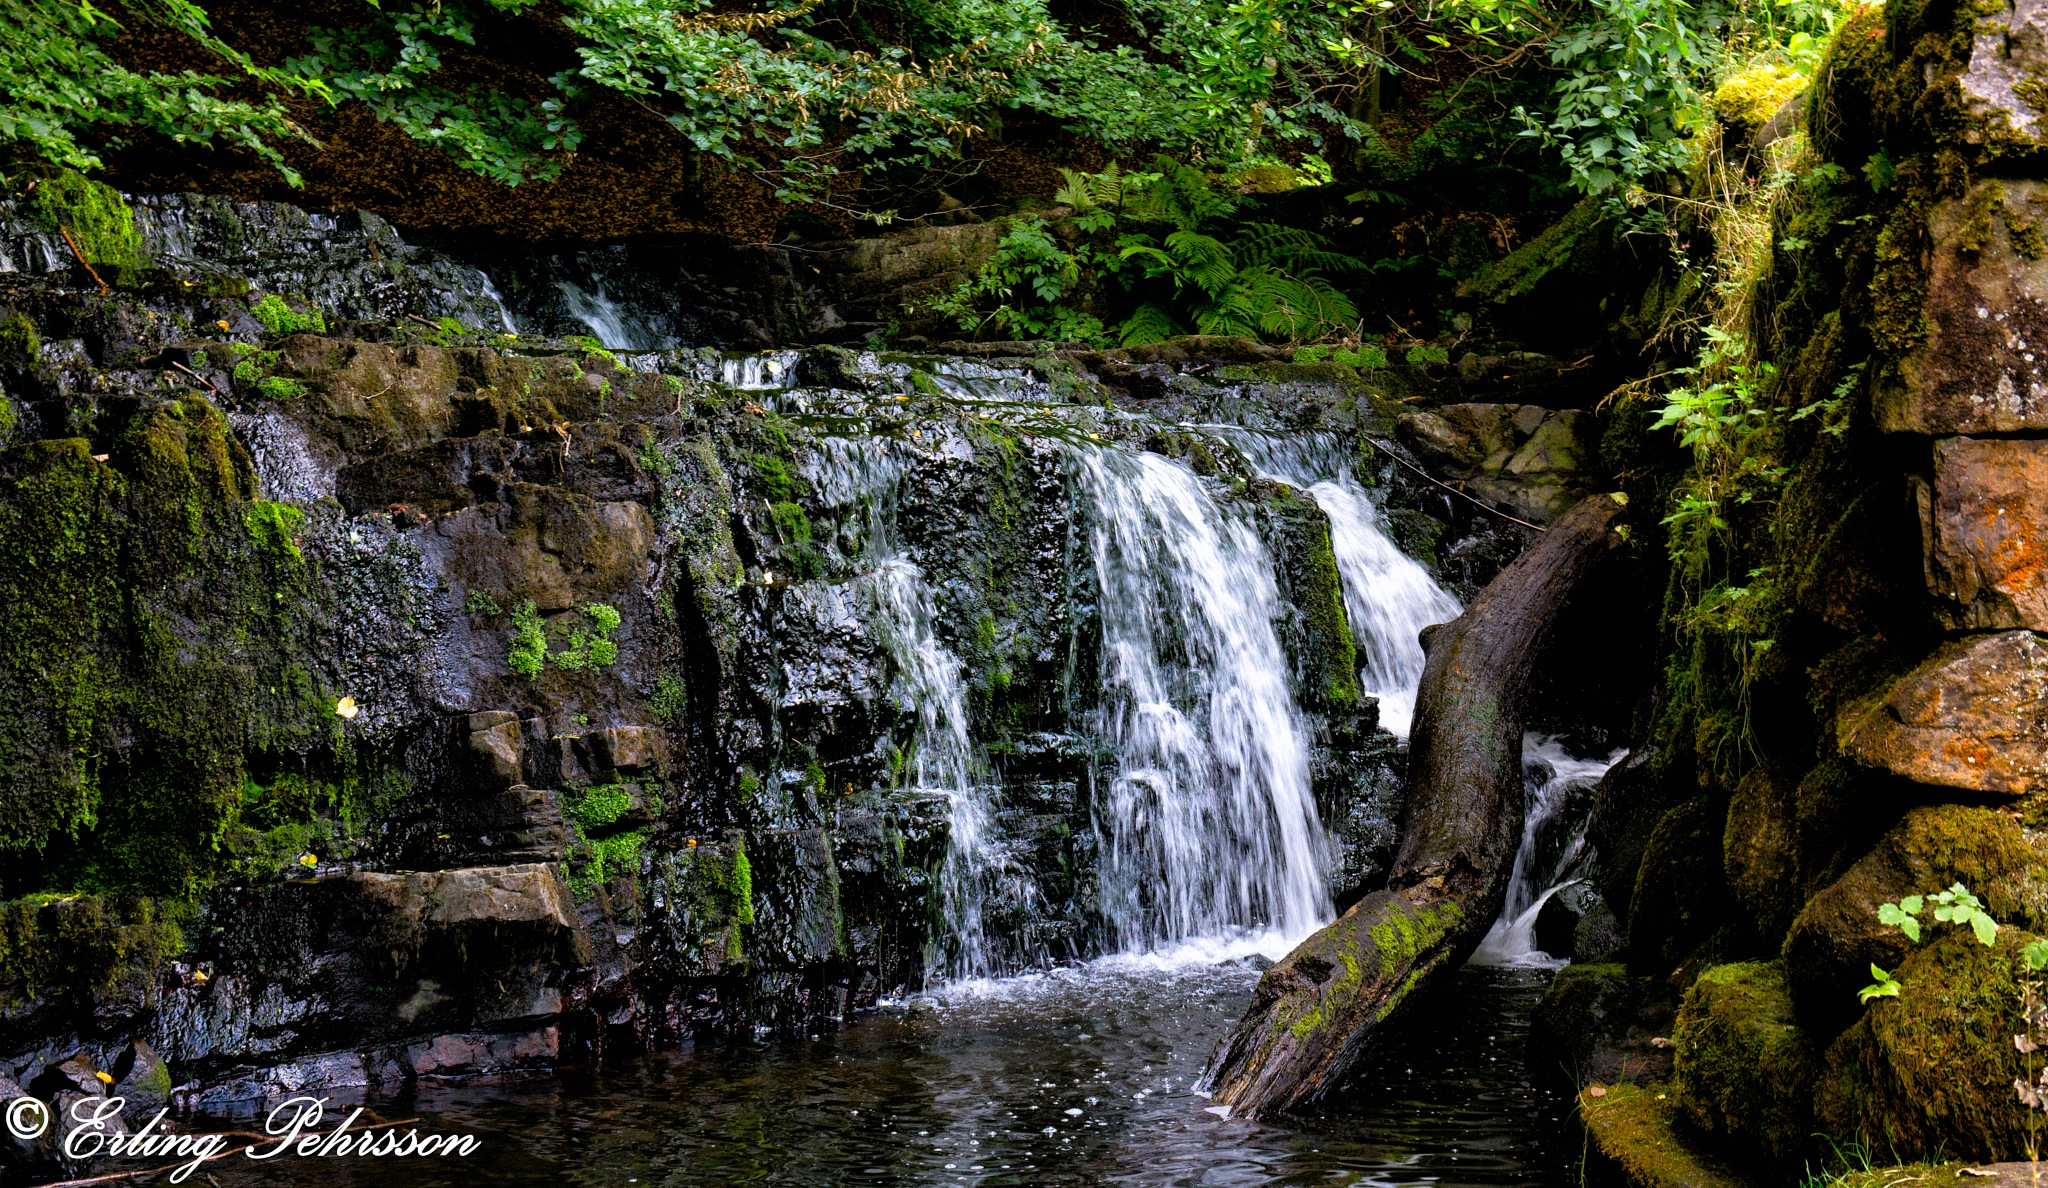 a small waterfall by erling.pehrsson